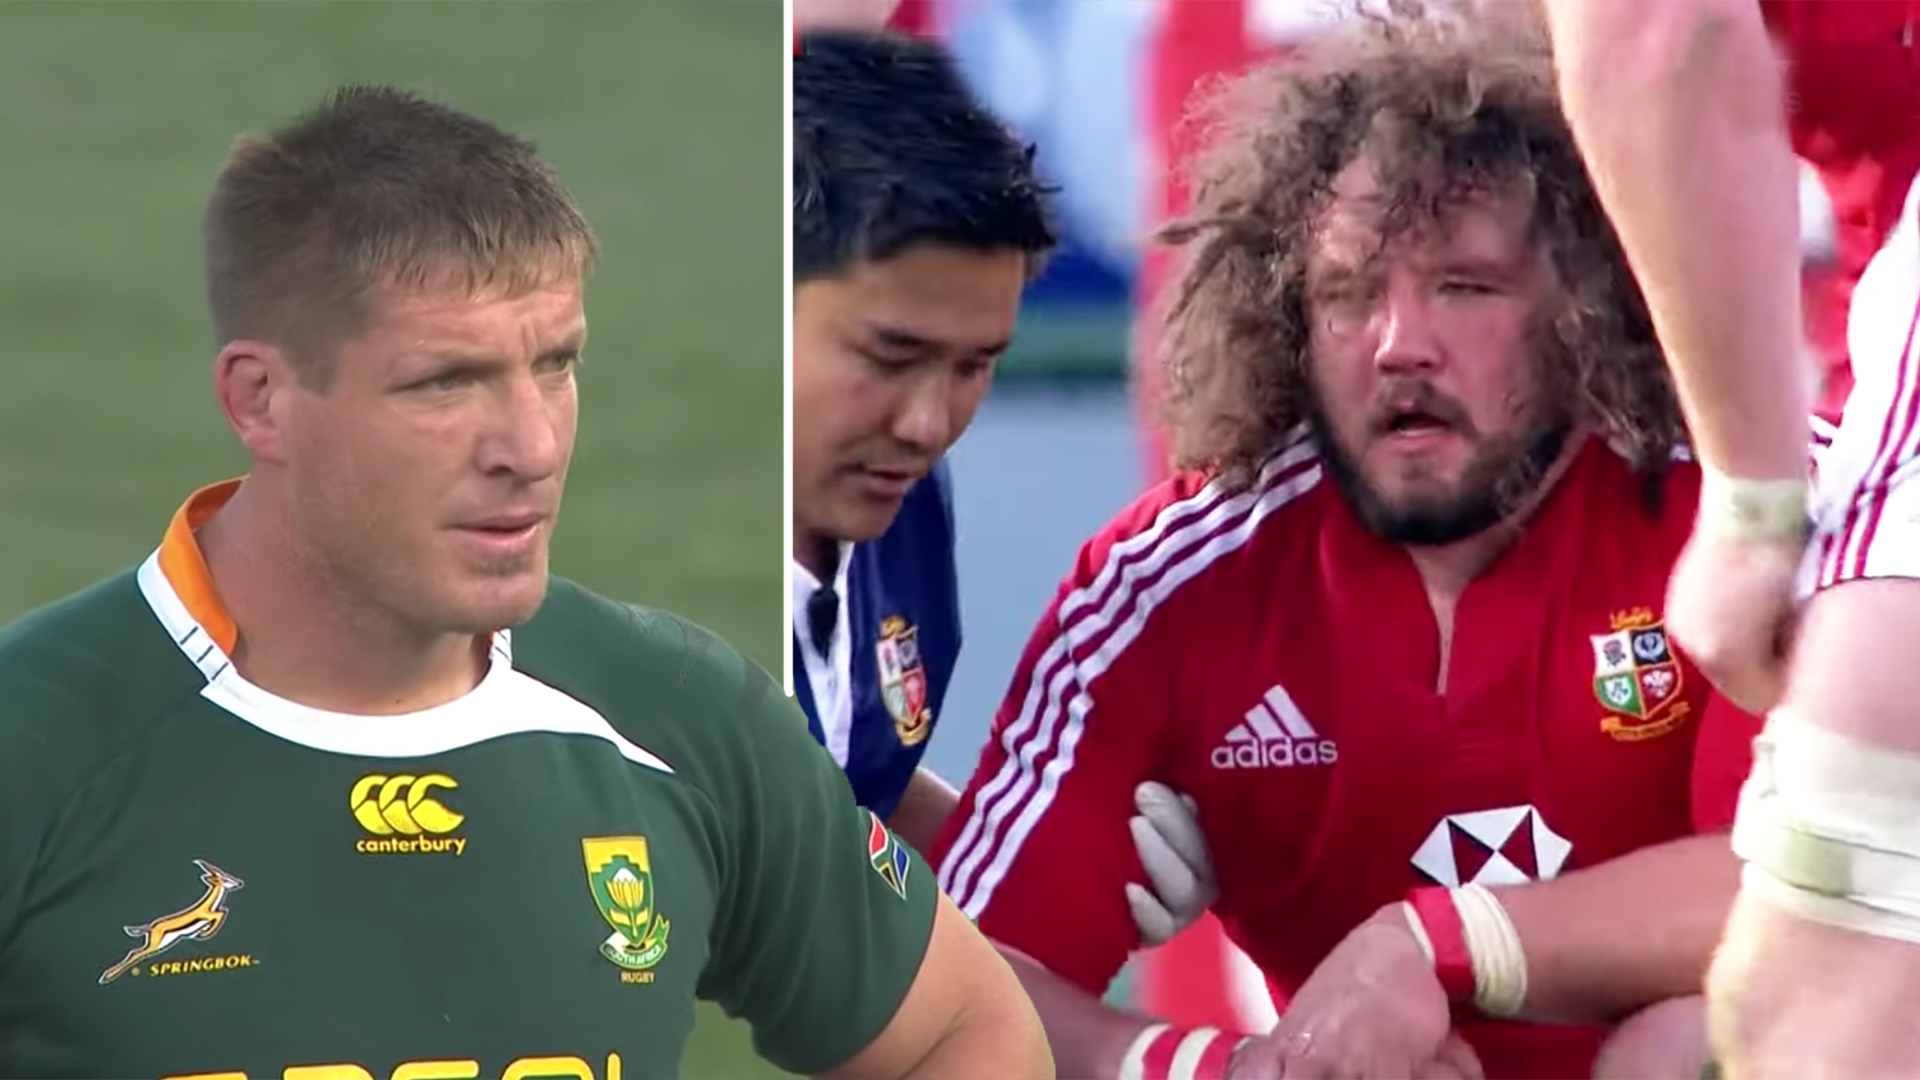 Adam Jones reveals what he really thought of THAT Bakkies Botha clear out that dislocated his shoulder in 2009